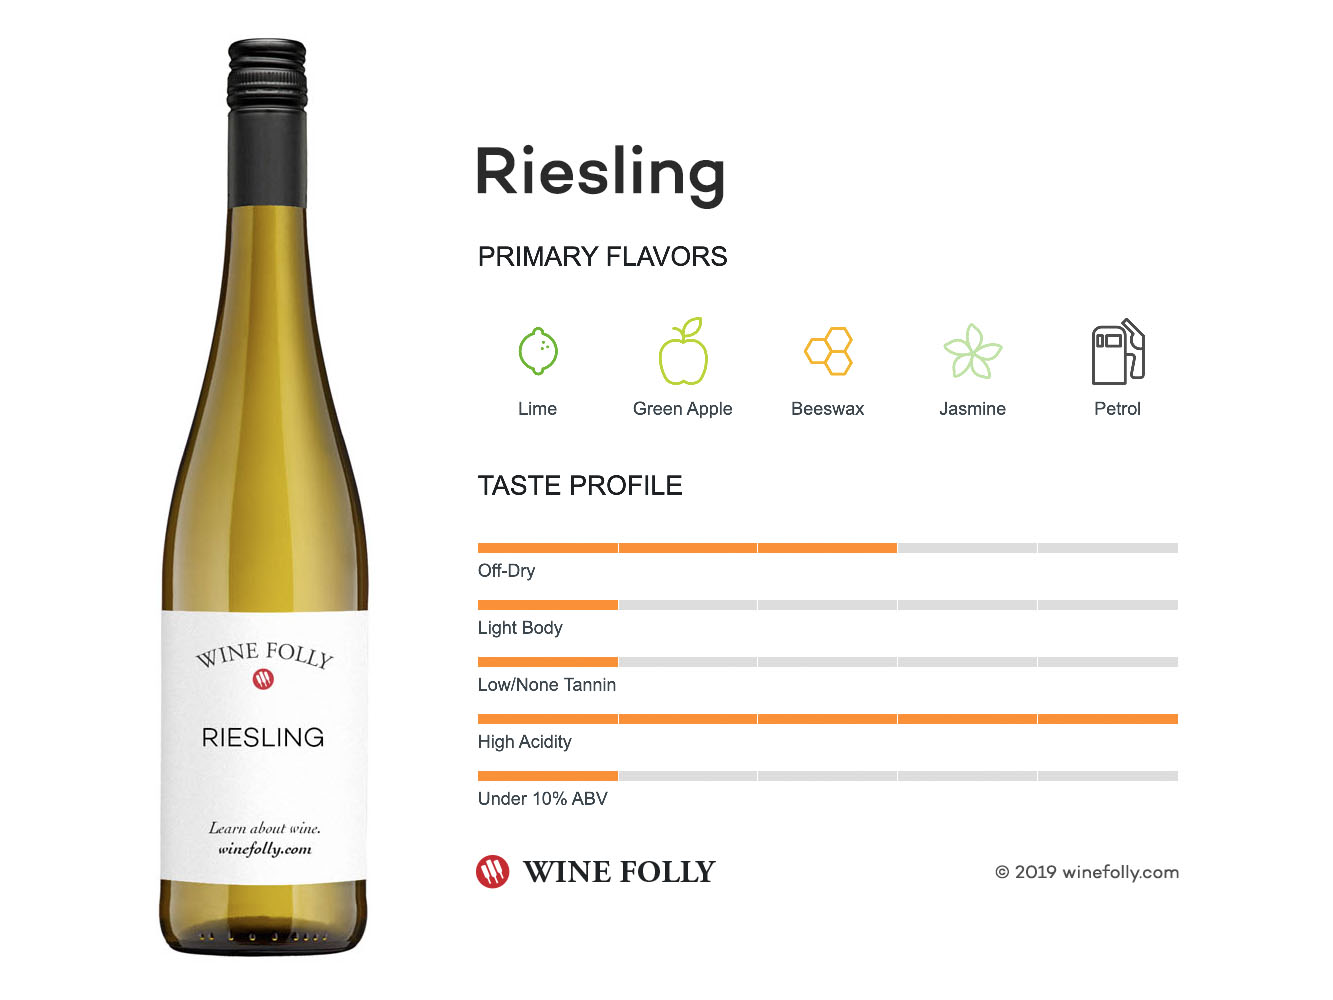 Image result for characteristics of riesling wine folly